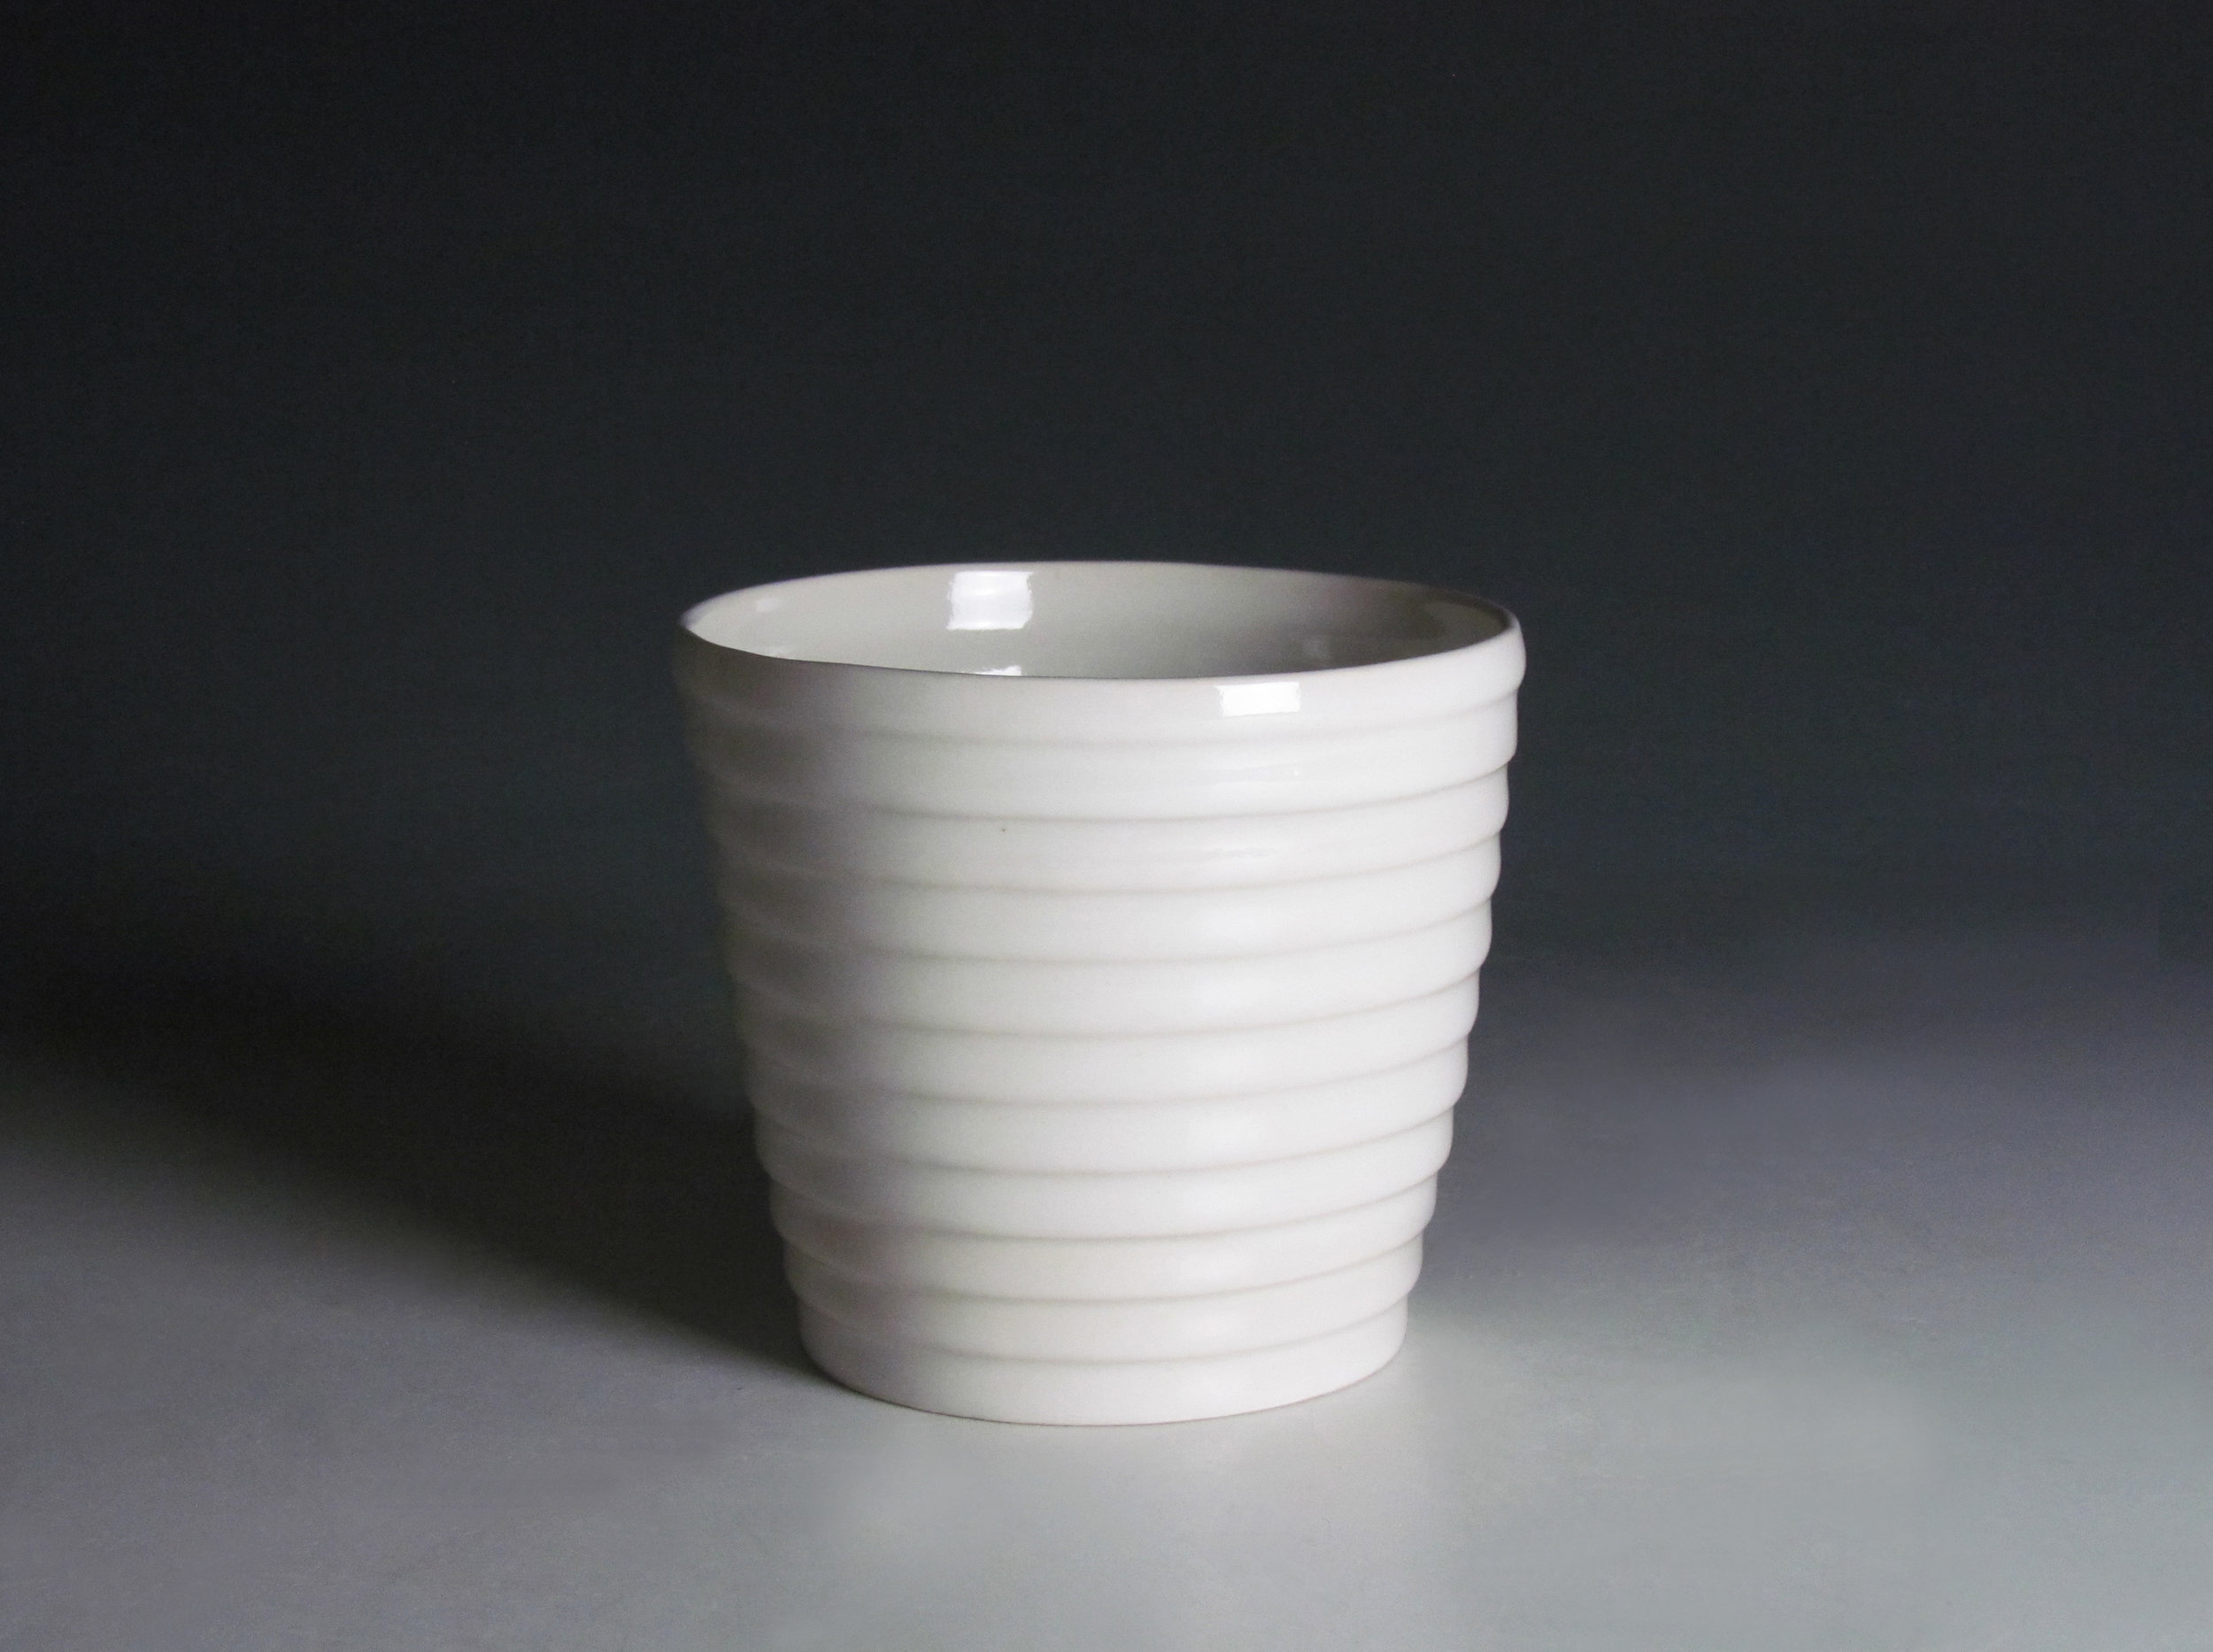 Cup (White)  |  6 x 4 x 4 inches  |  Porcelain, Glaze  |  2016